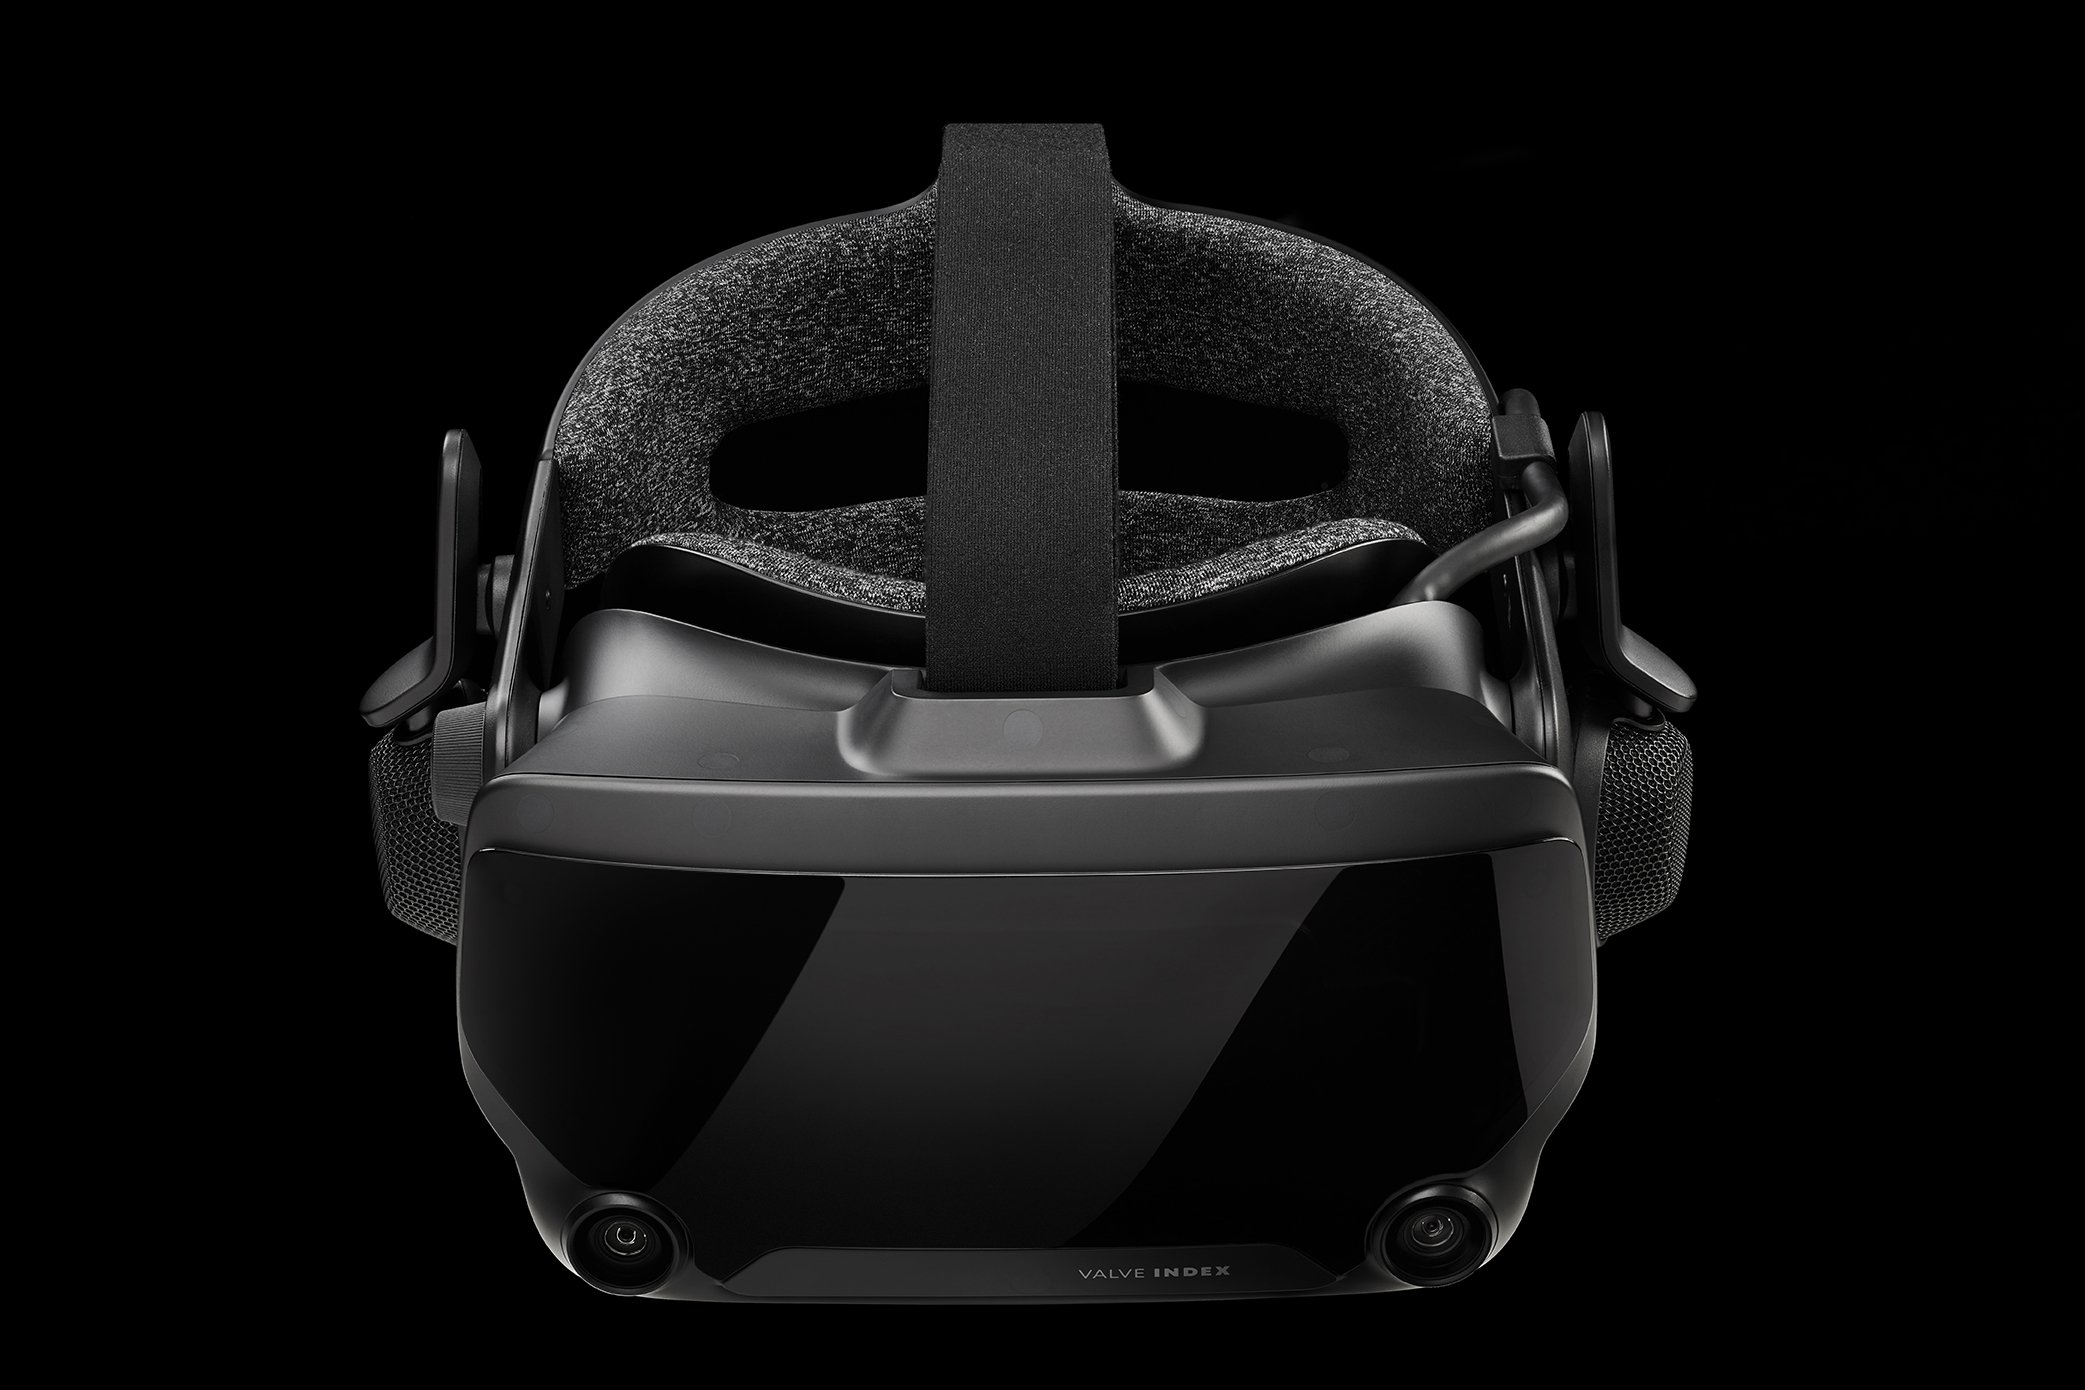 The Valve Index VR HMD appears to have a lot of ergonomic improvements for extended gameplay experiences.